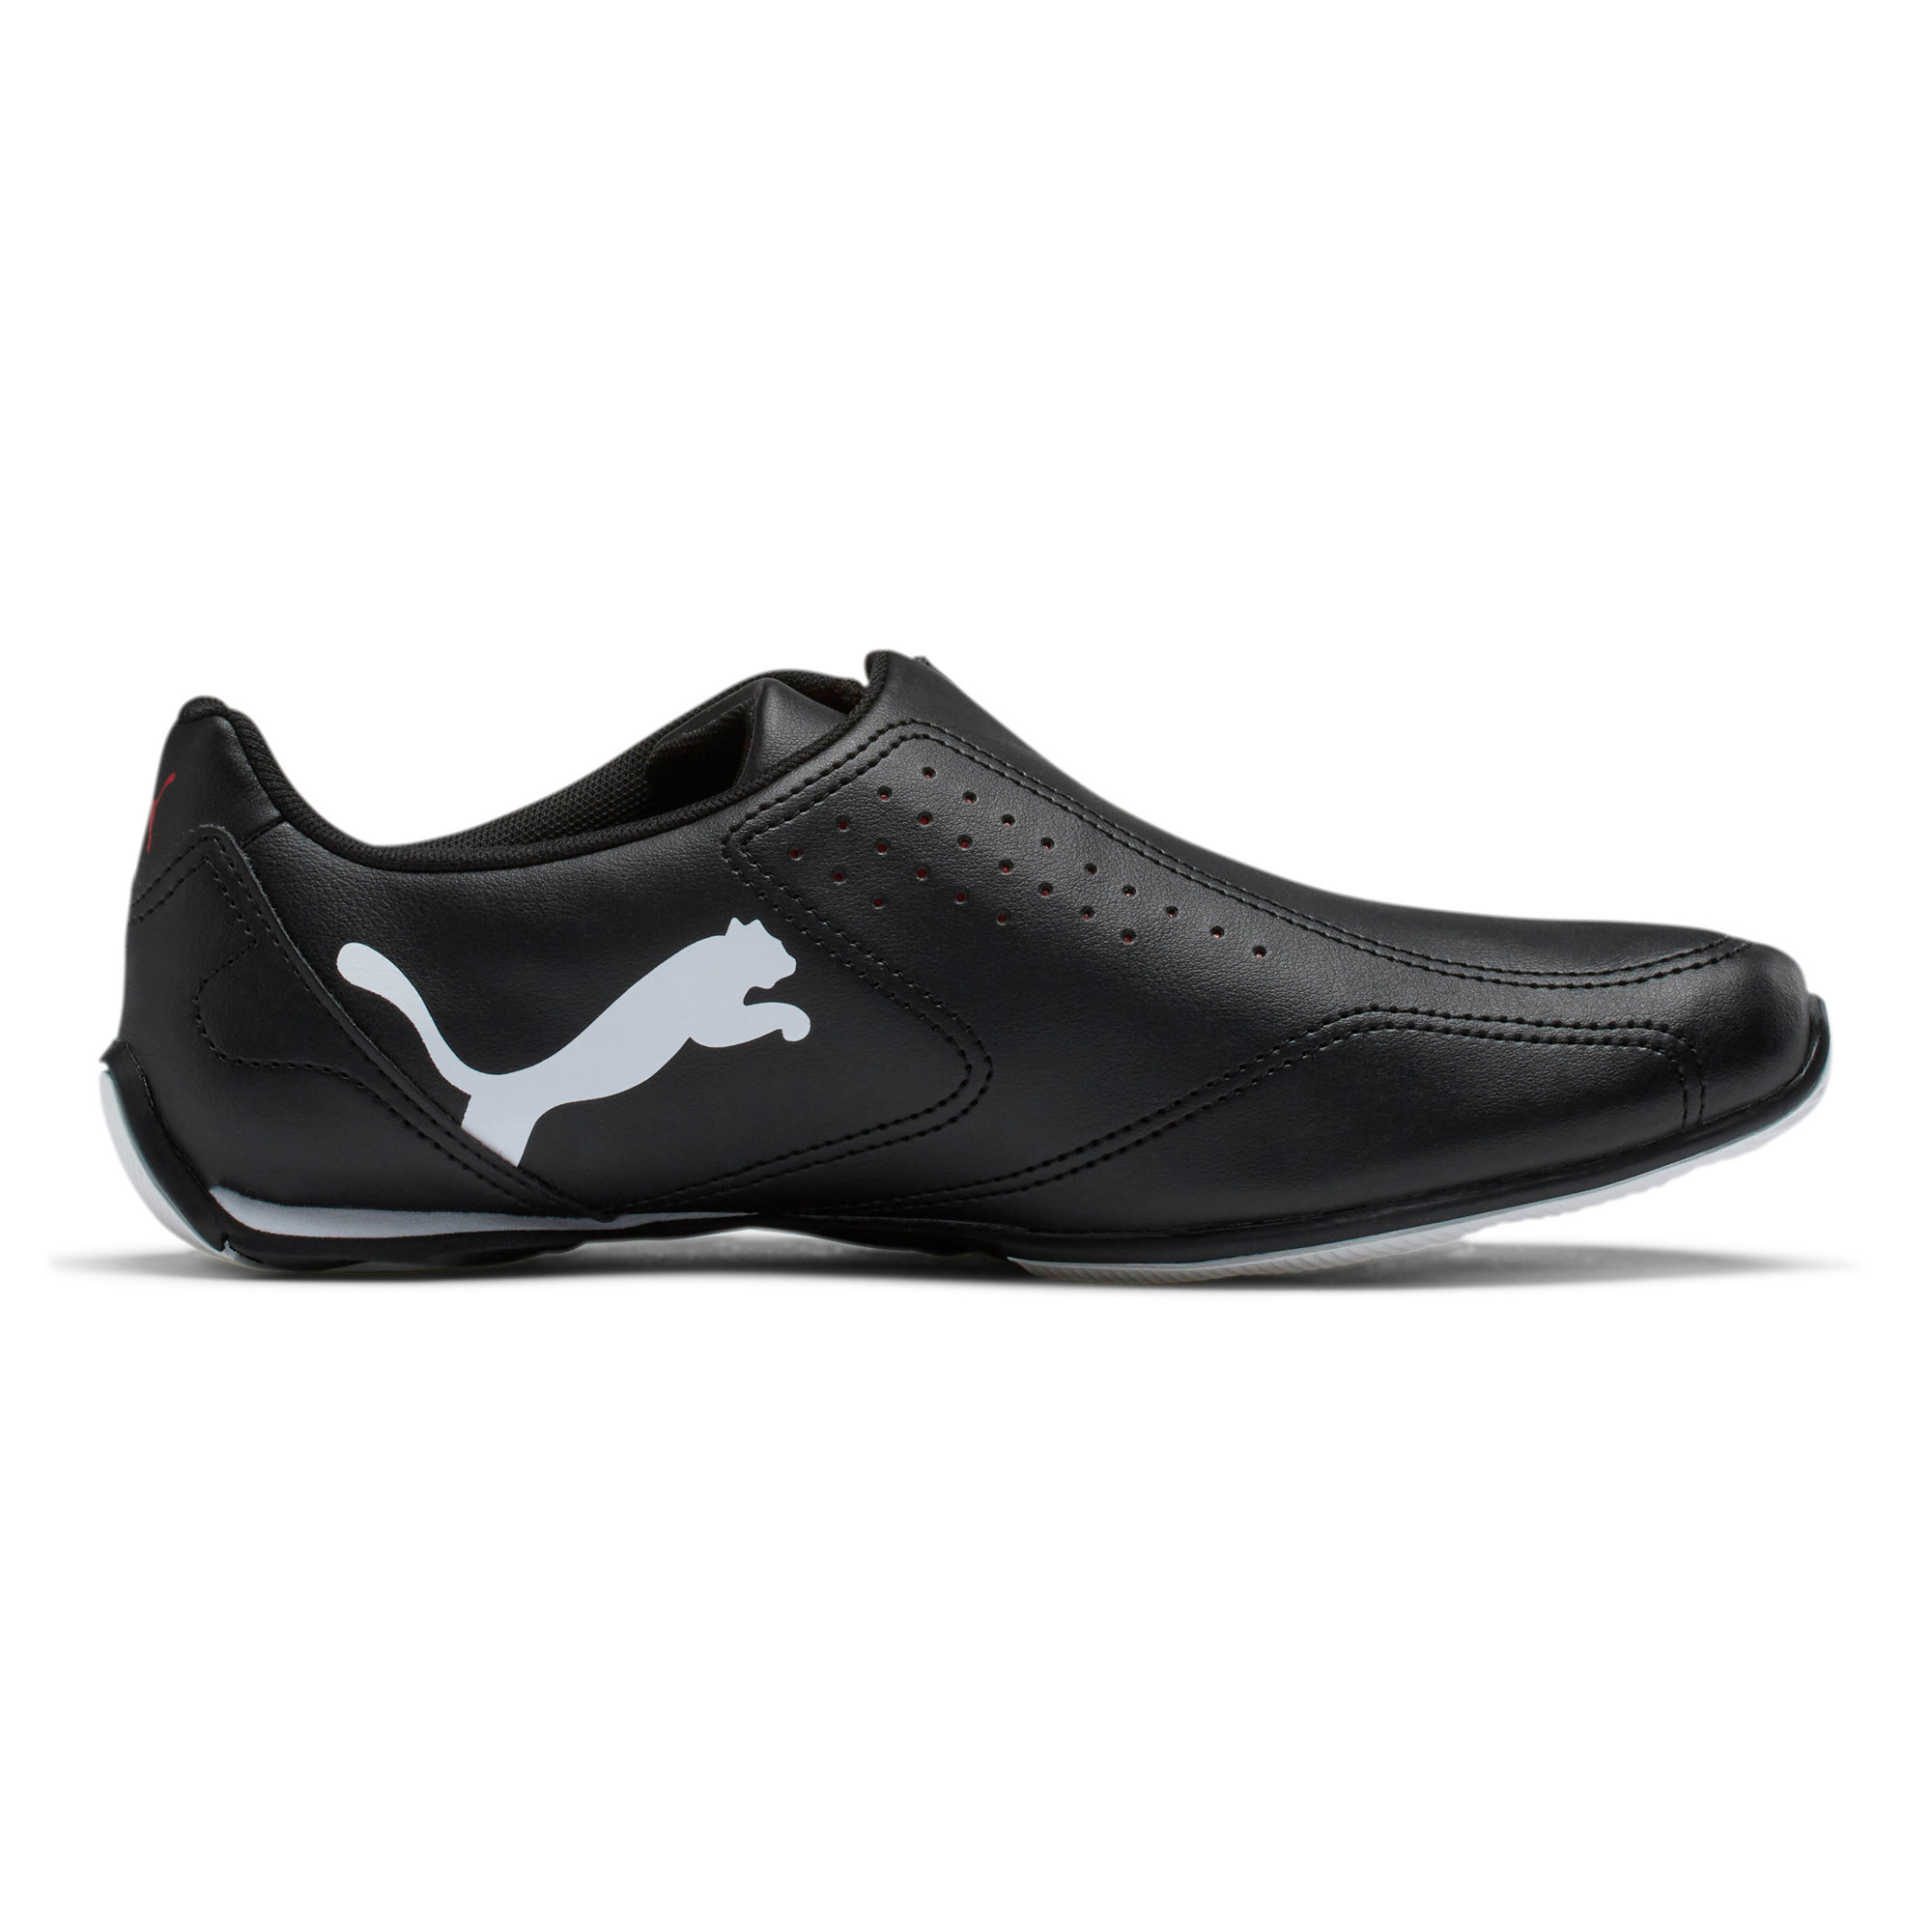 PUMA-Redon-Move-Shoes-Men-Shoe-Sport-Shoe thumbnail 6